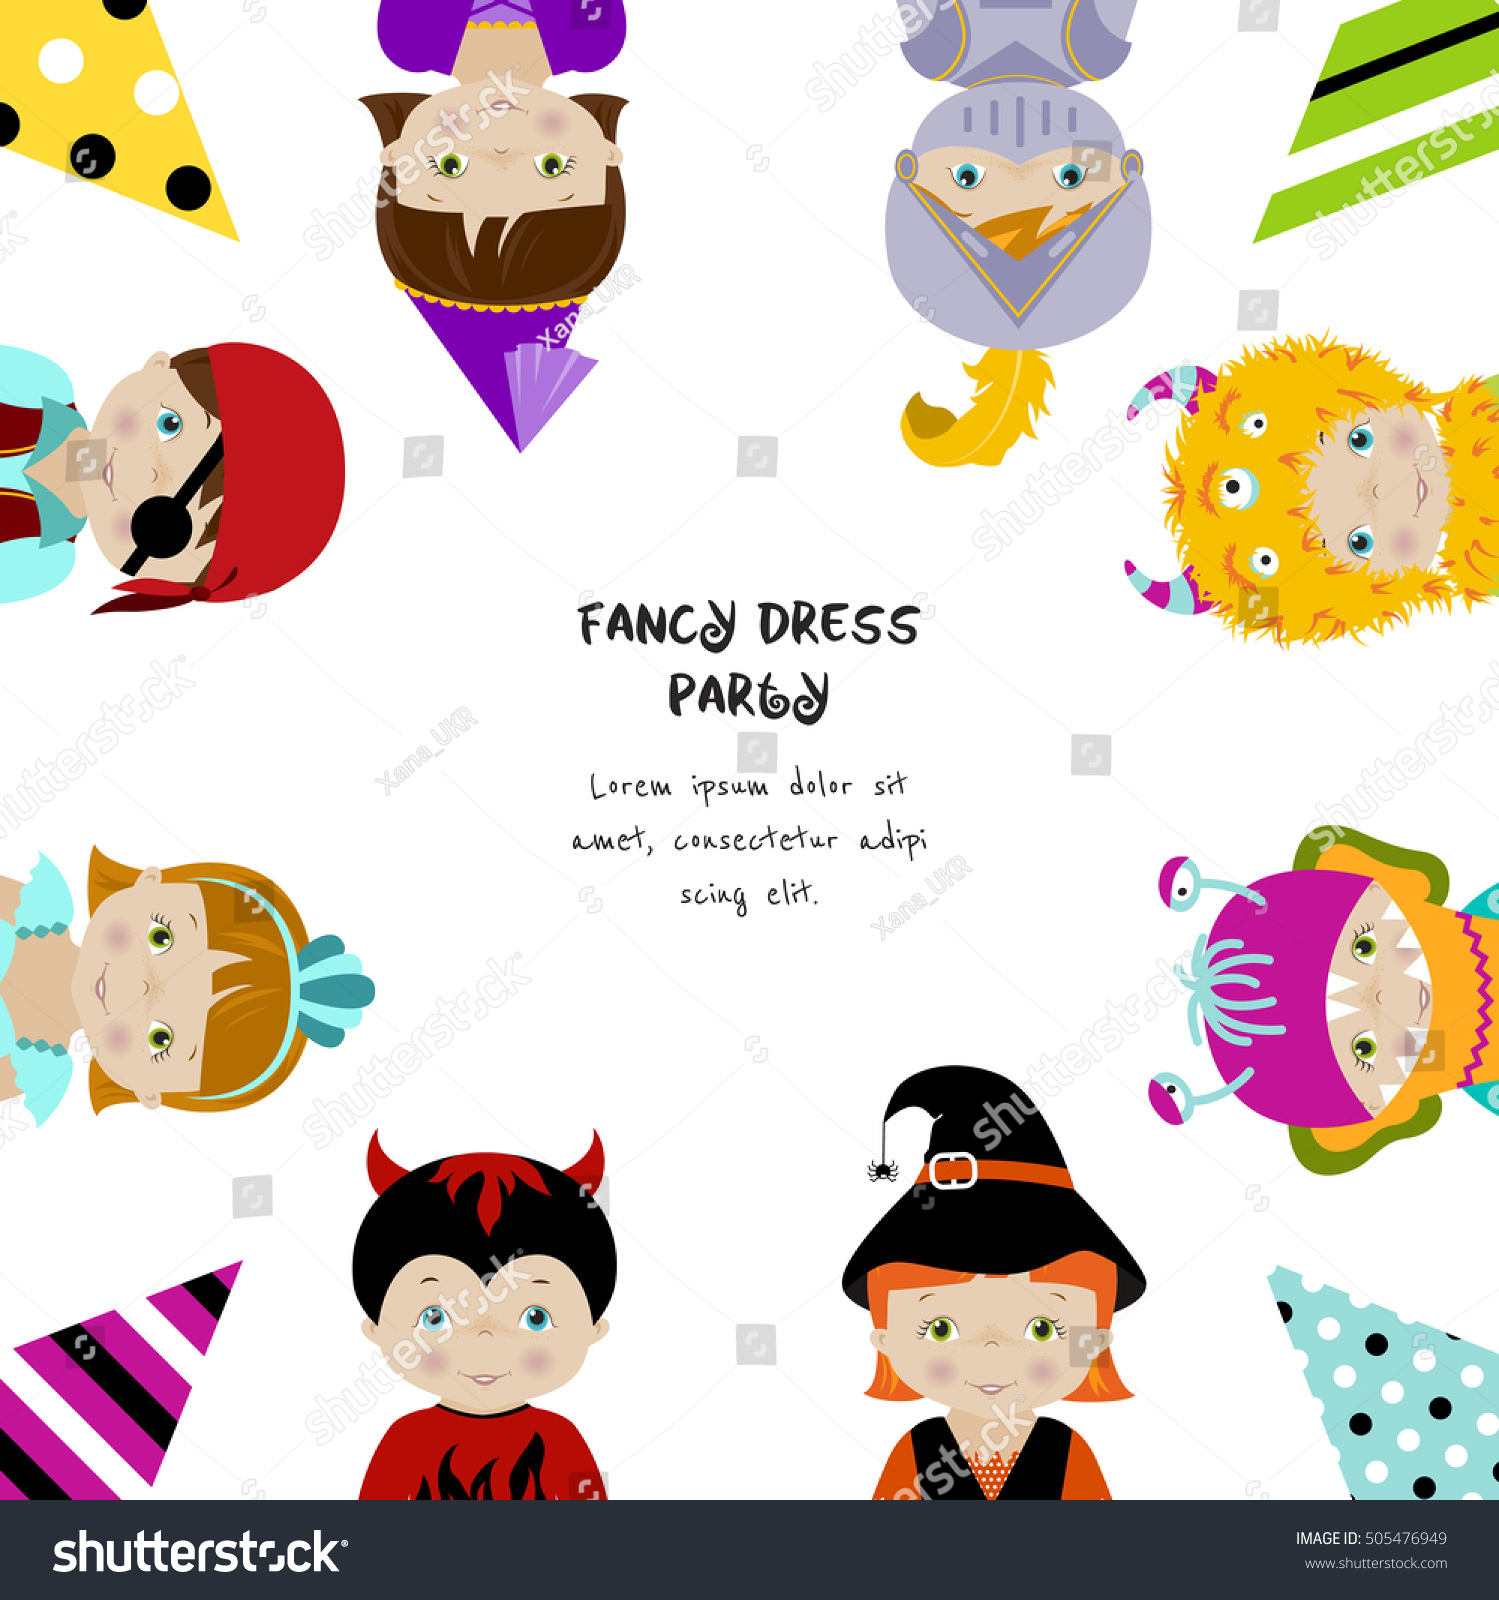 Square Background Fancy Dress Party Invitation Stock Vector ...